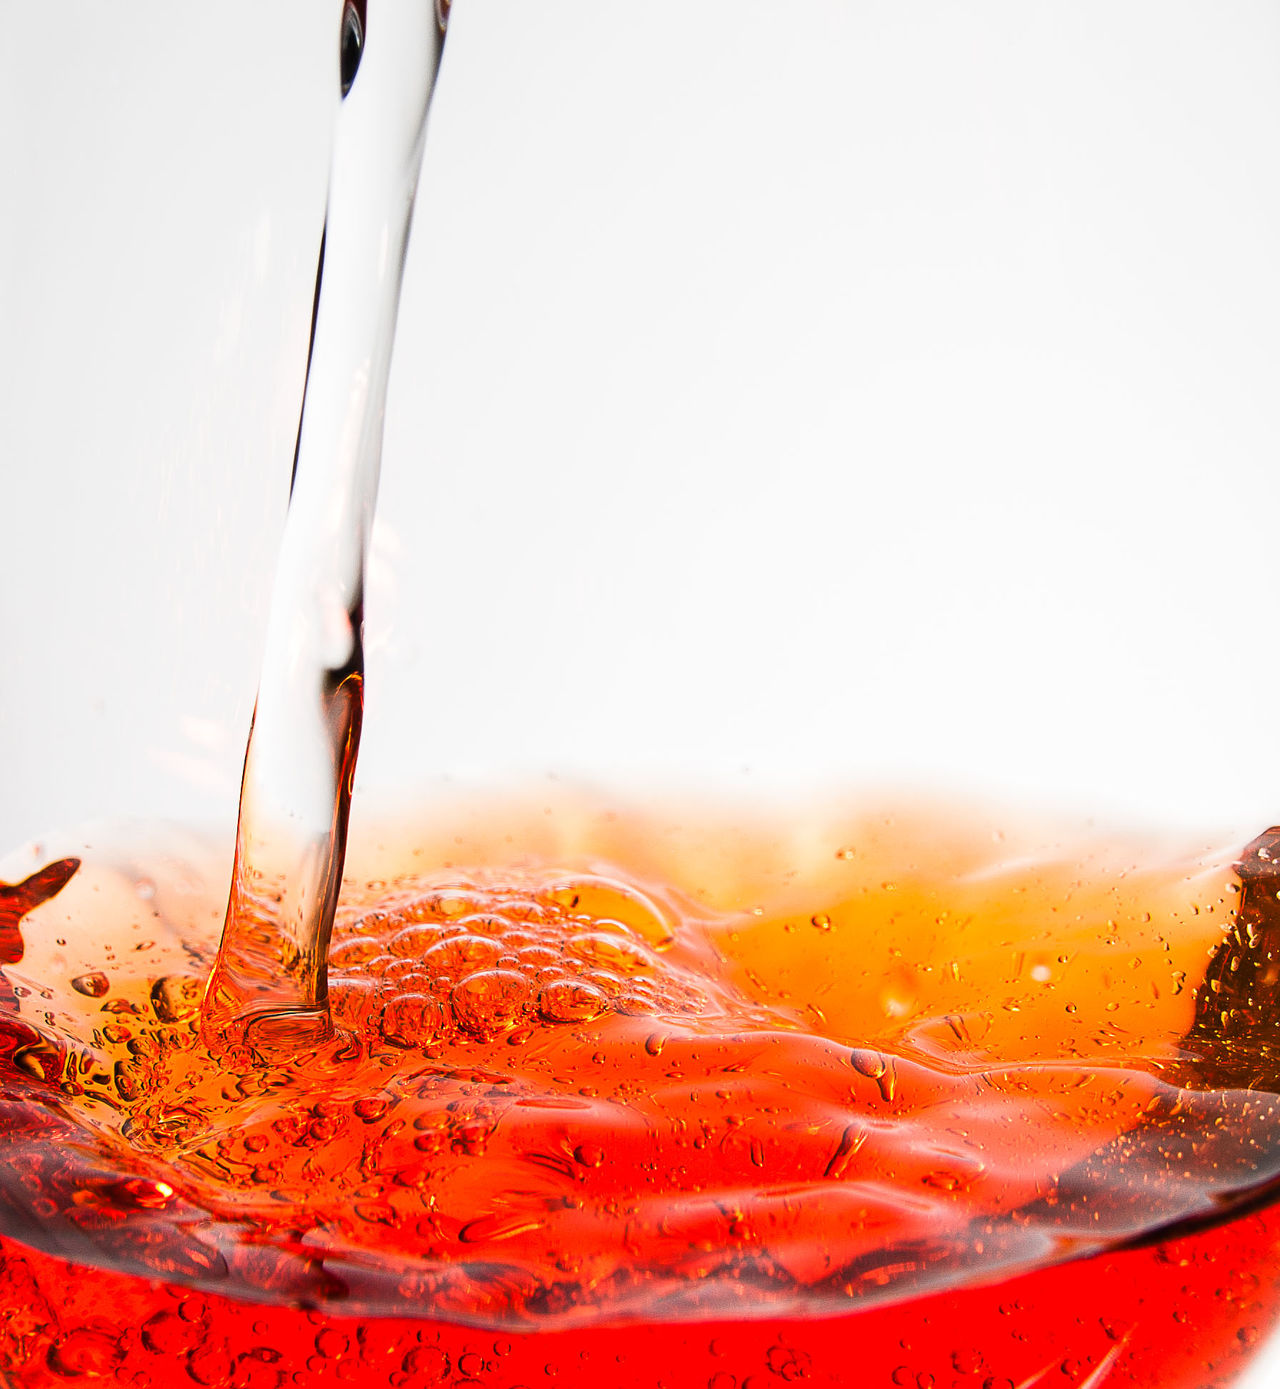 pouring liquid Abstract Backgrounds Close-up Drinking Drop Falling Flowing Food Fresh Liquid Mixing Motion No People Orange Pouring Red Splashing White